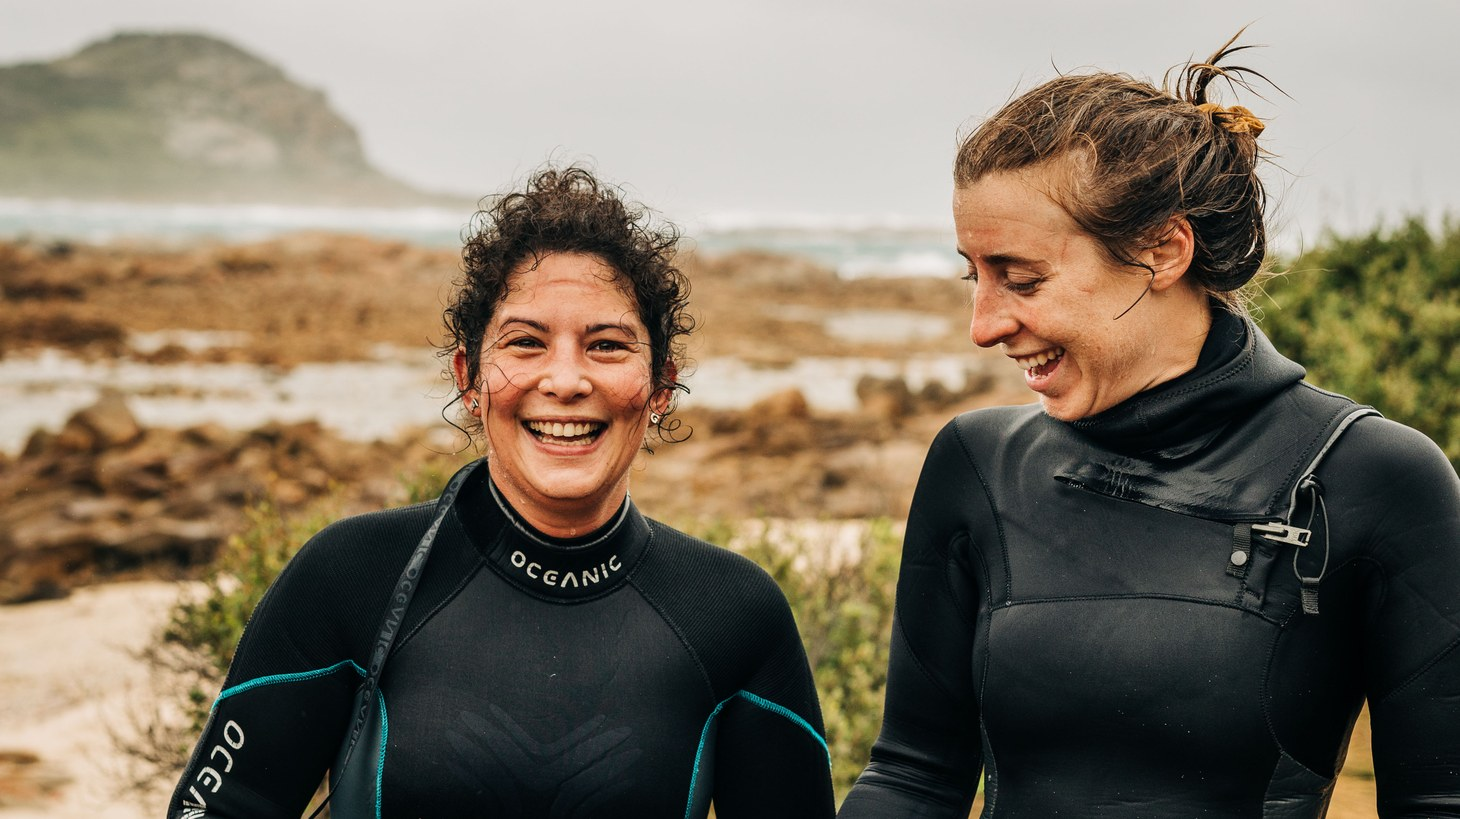 Analiese Gregory describes Tasmania as one of the last great wildernesses, where the ocean is in charge and you lose control.